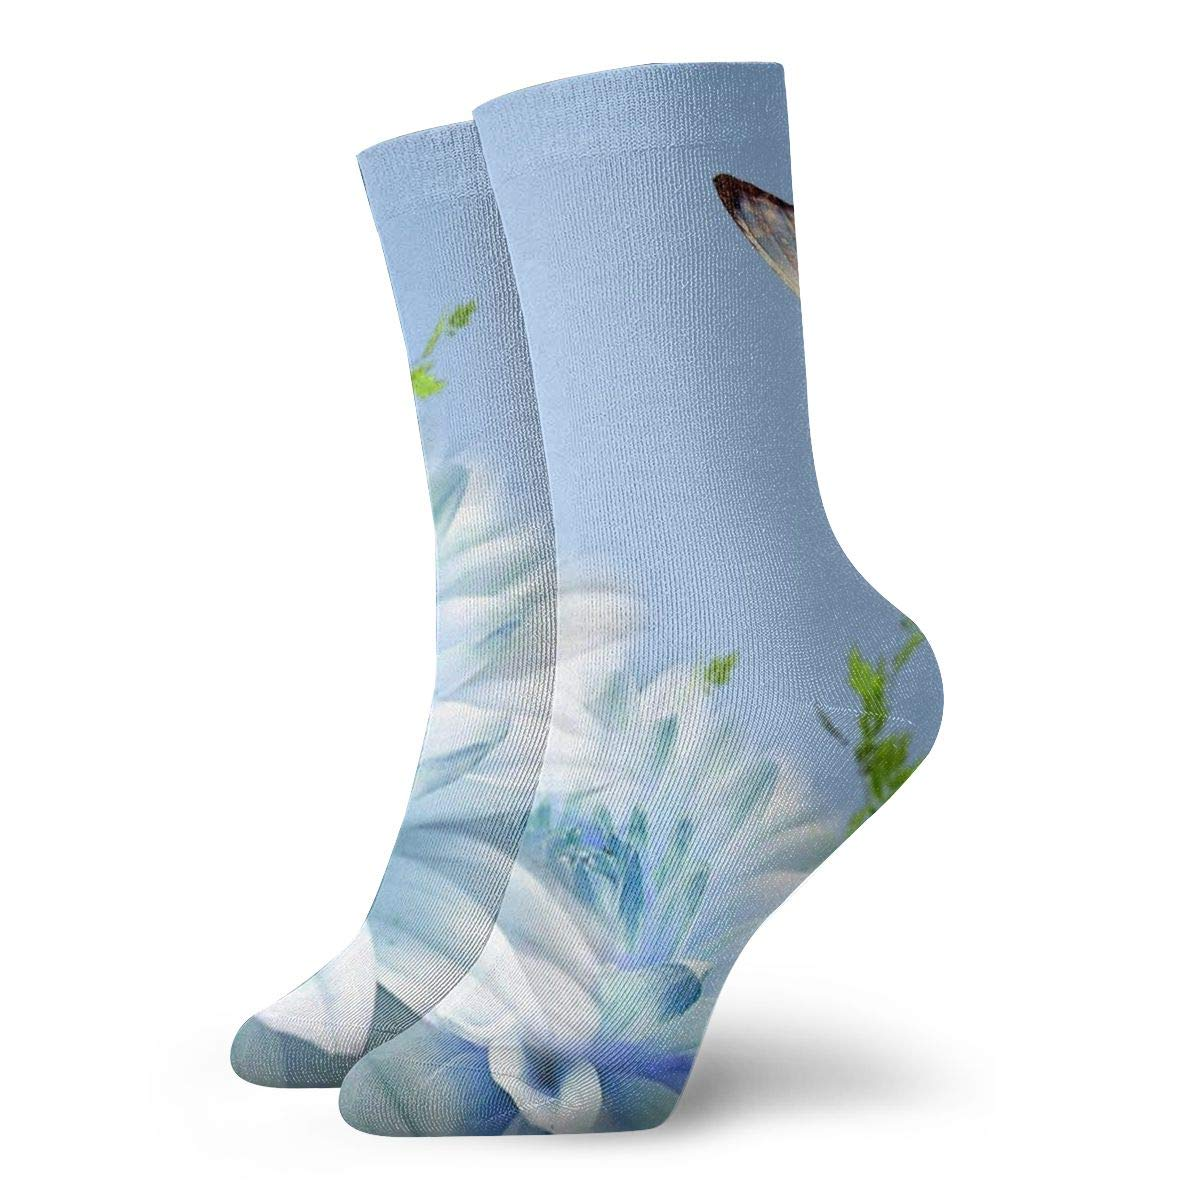 WEEDKEYCAT Flying Blue Flower Butterfly Adult Short Socks Cotton Cool Socks for Mens Womens Yoga Hiking Cycling Running Soccer Sports